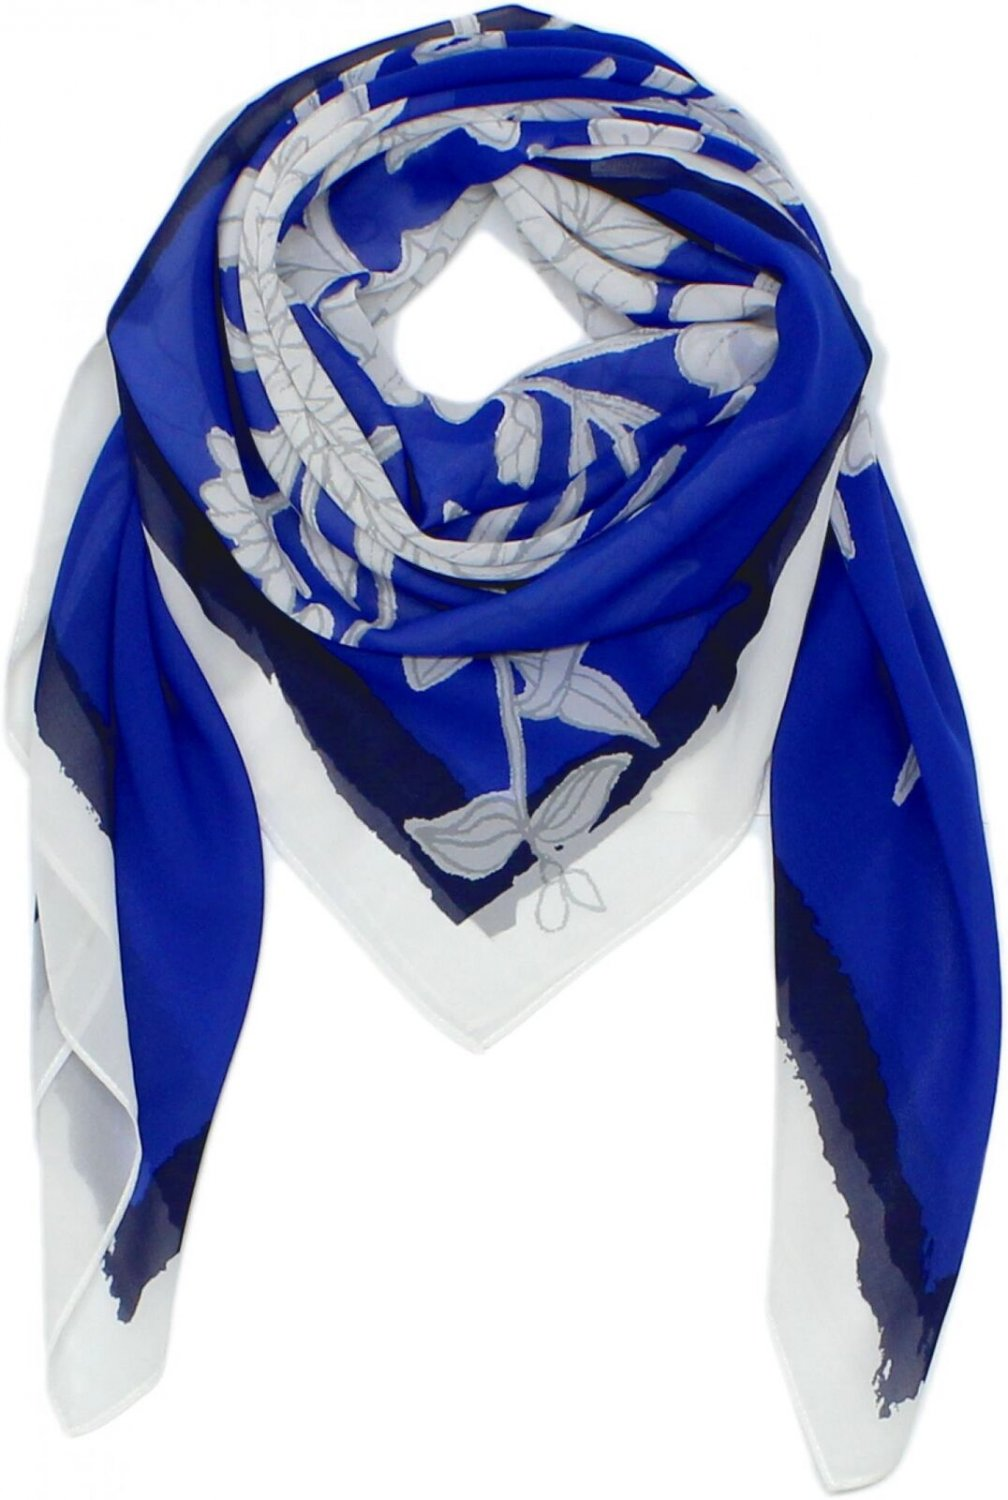 A New Day Women's Square Fashion Scarf Blue / White Floral One Size